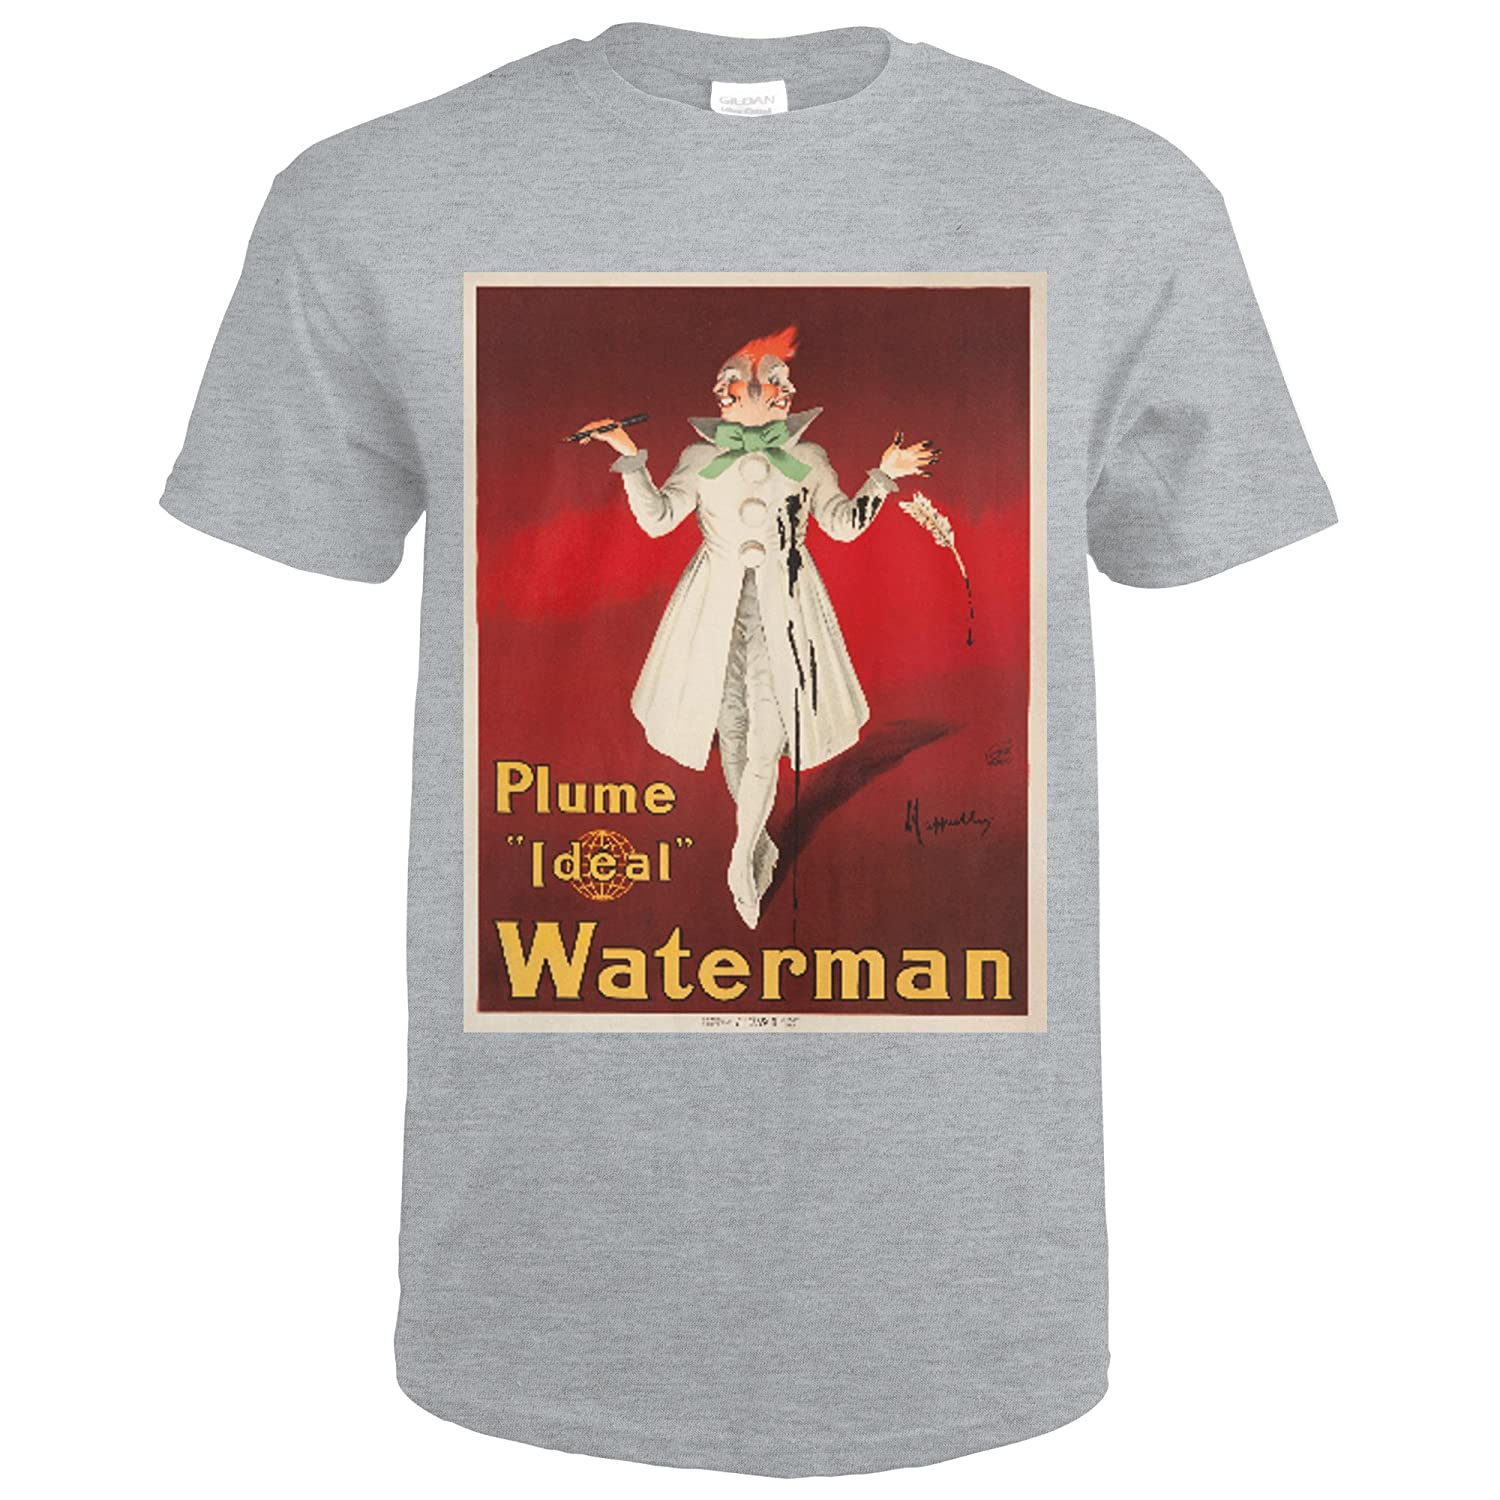 Amazon.com: Waterman - Plume Ideal Vintage Poster (artist: Cappiello,  Leonetto) France c. 1913 (Sport Grey T-Shirt Large): Clothing